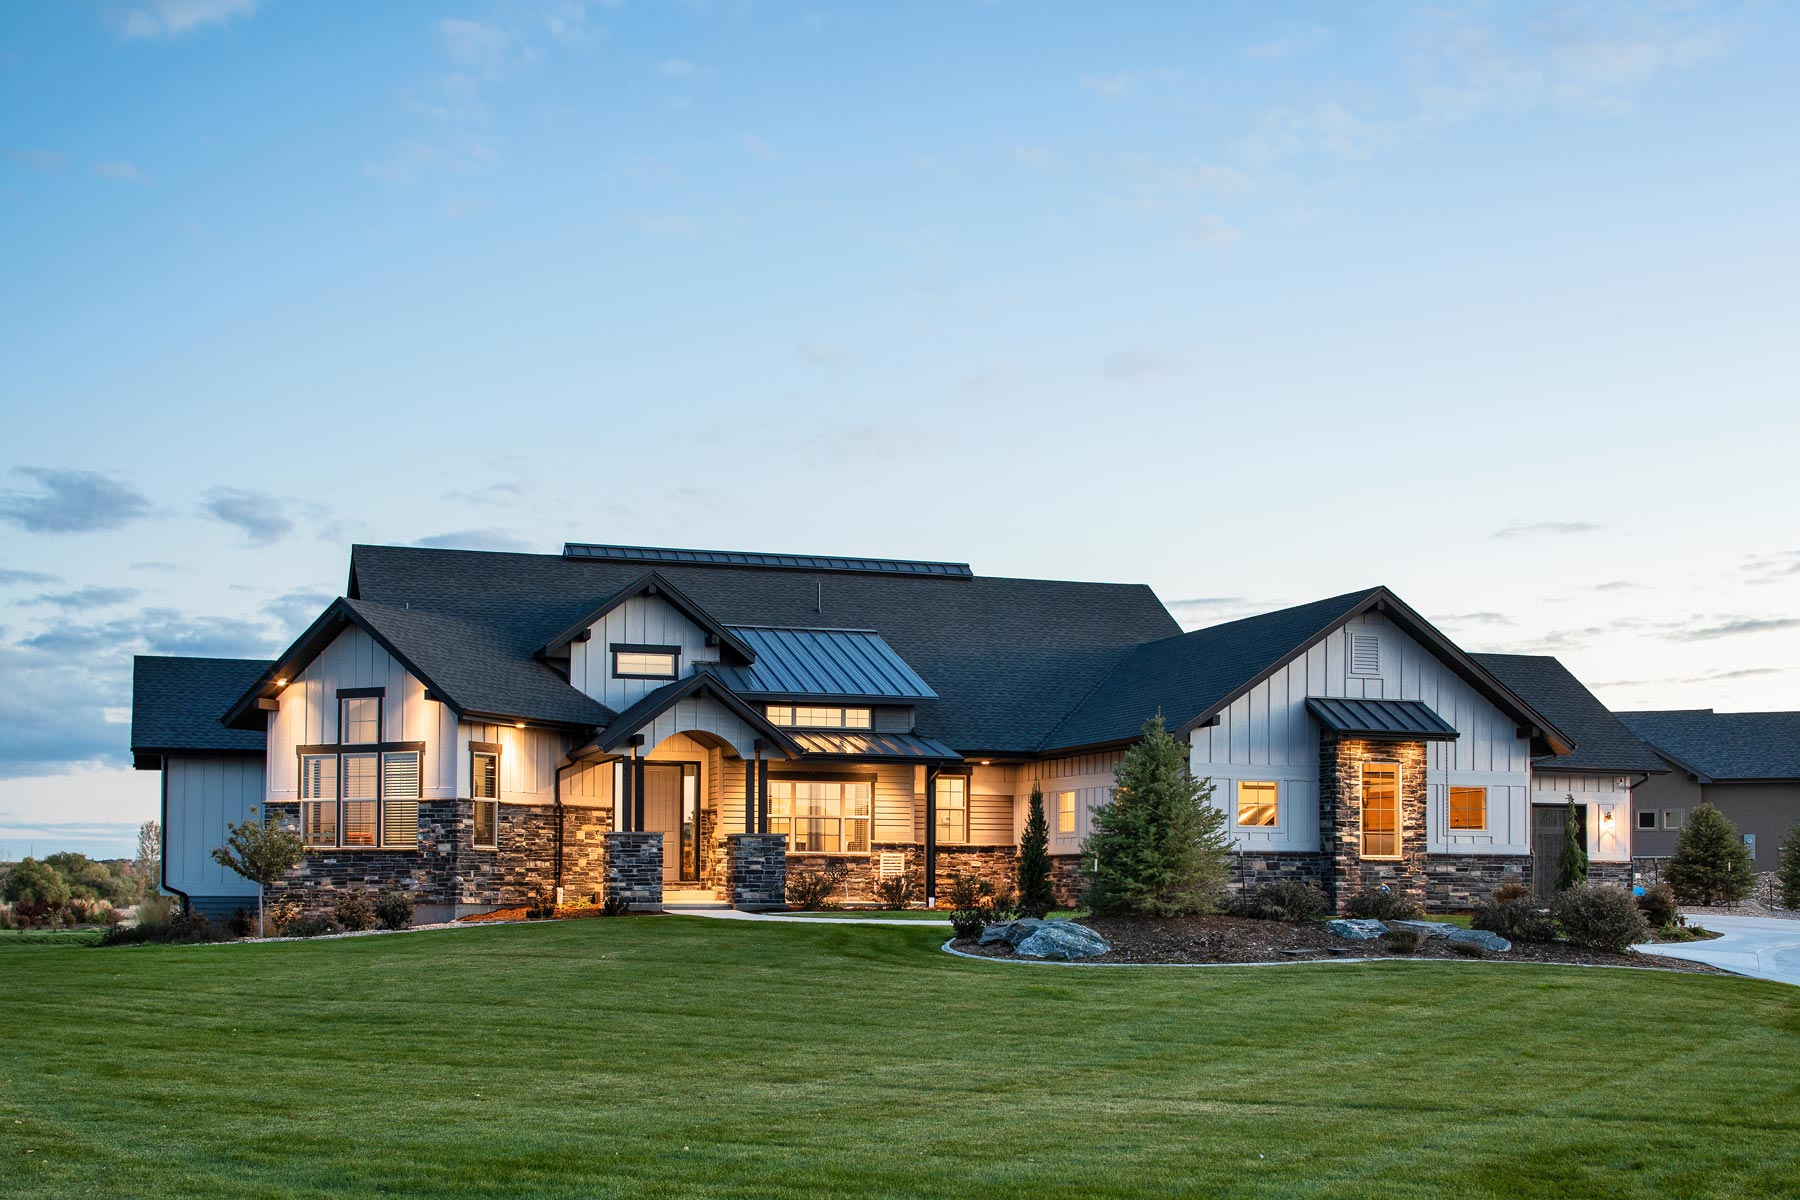 Rentfrow Design - Residential Architecture Photography - Timnath, Colorado